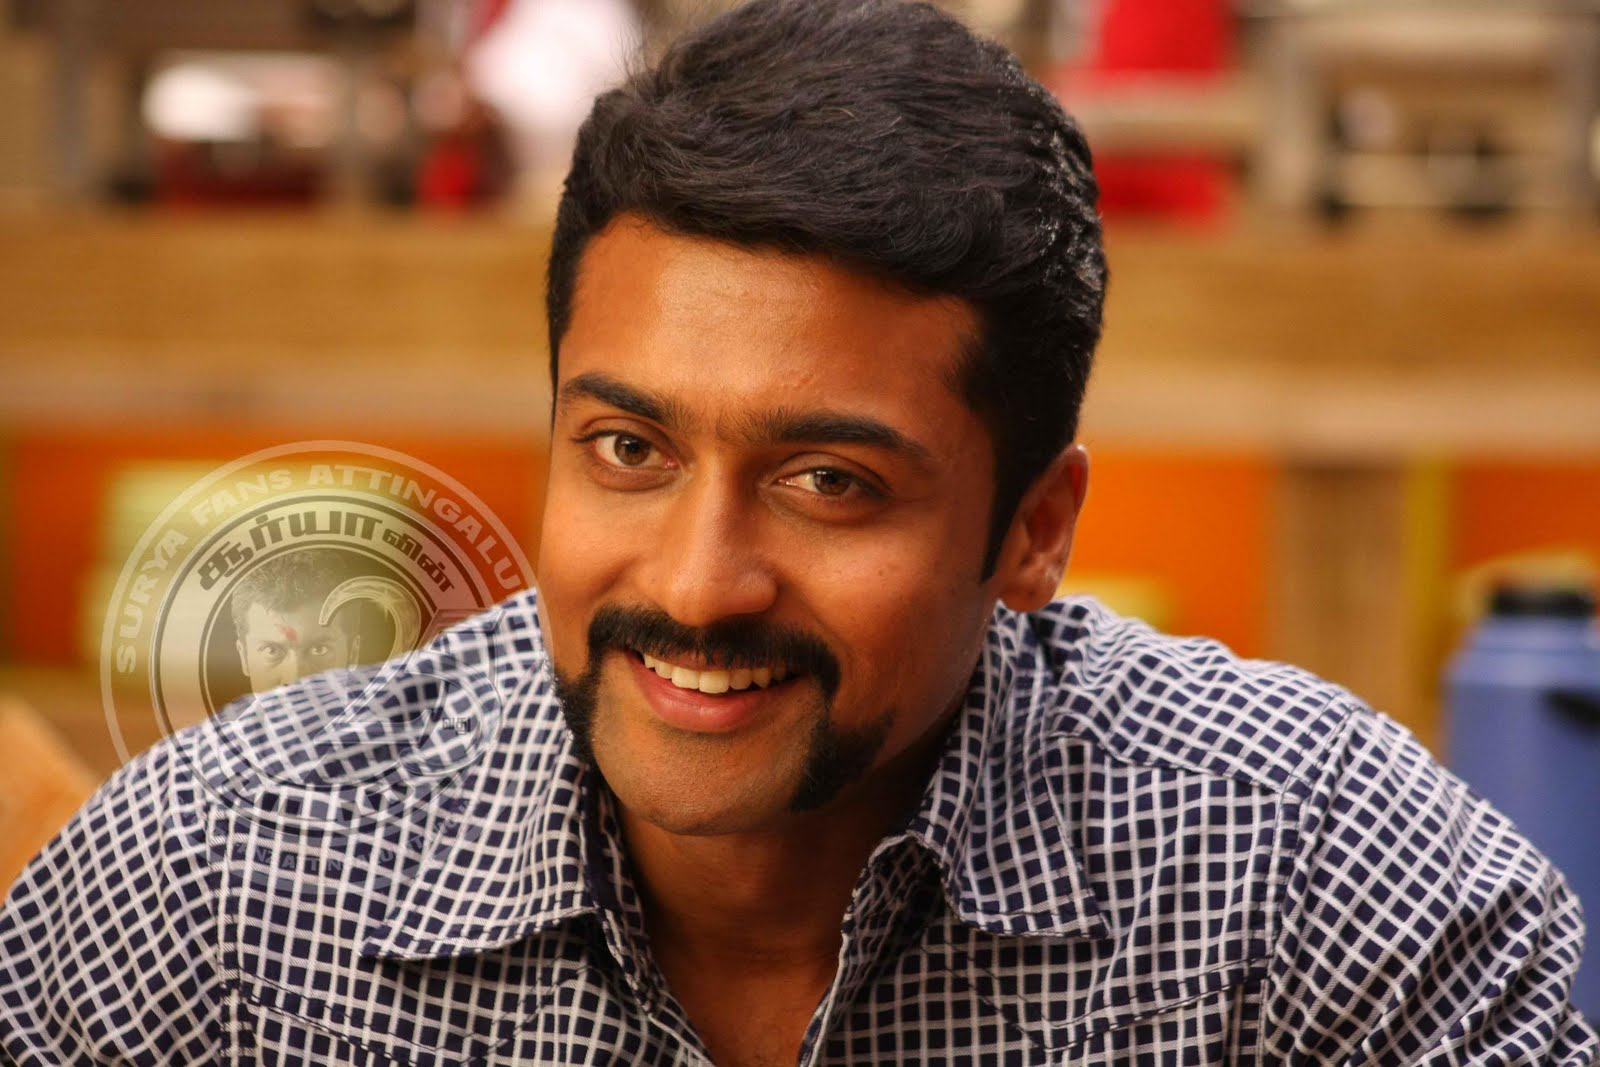 Tamil actor surya hd wallpapers free download ltt tamil actor surya hd wallpapers free download high definition hd wallpapers high quality hq wallpapers thecheapjerseys Gallery